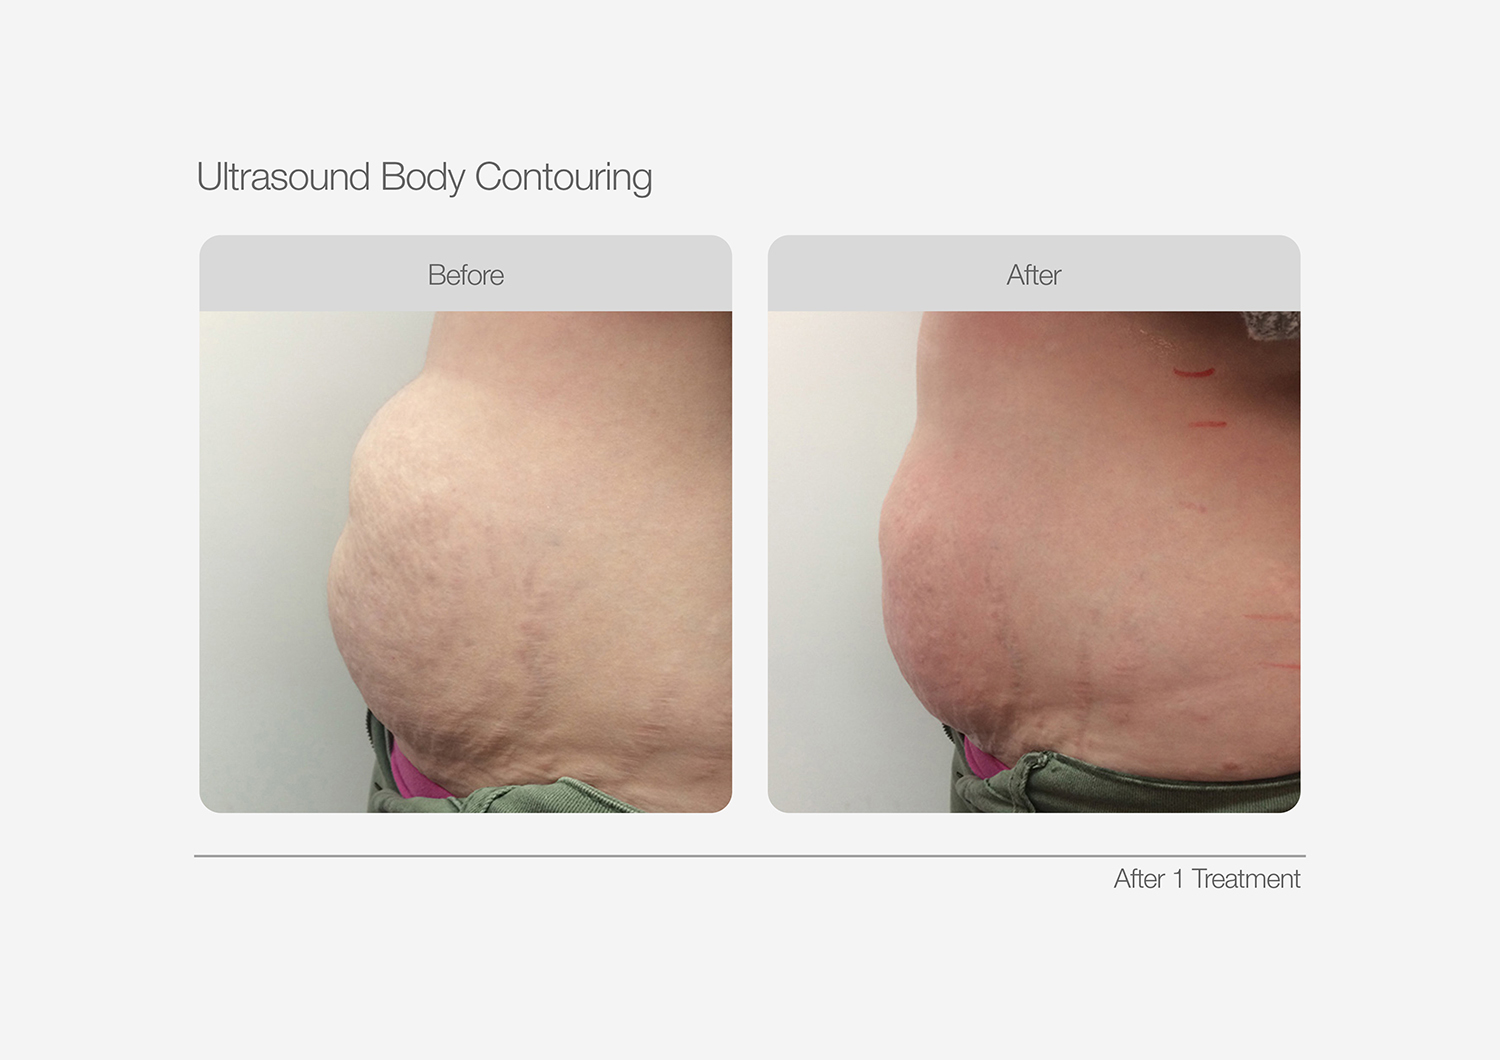 Ultrasound-Body-Contouring-Before-After-12